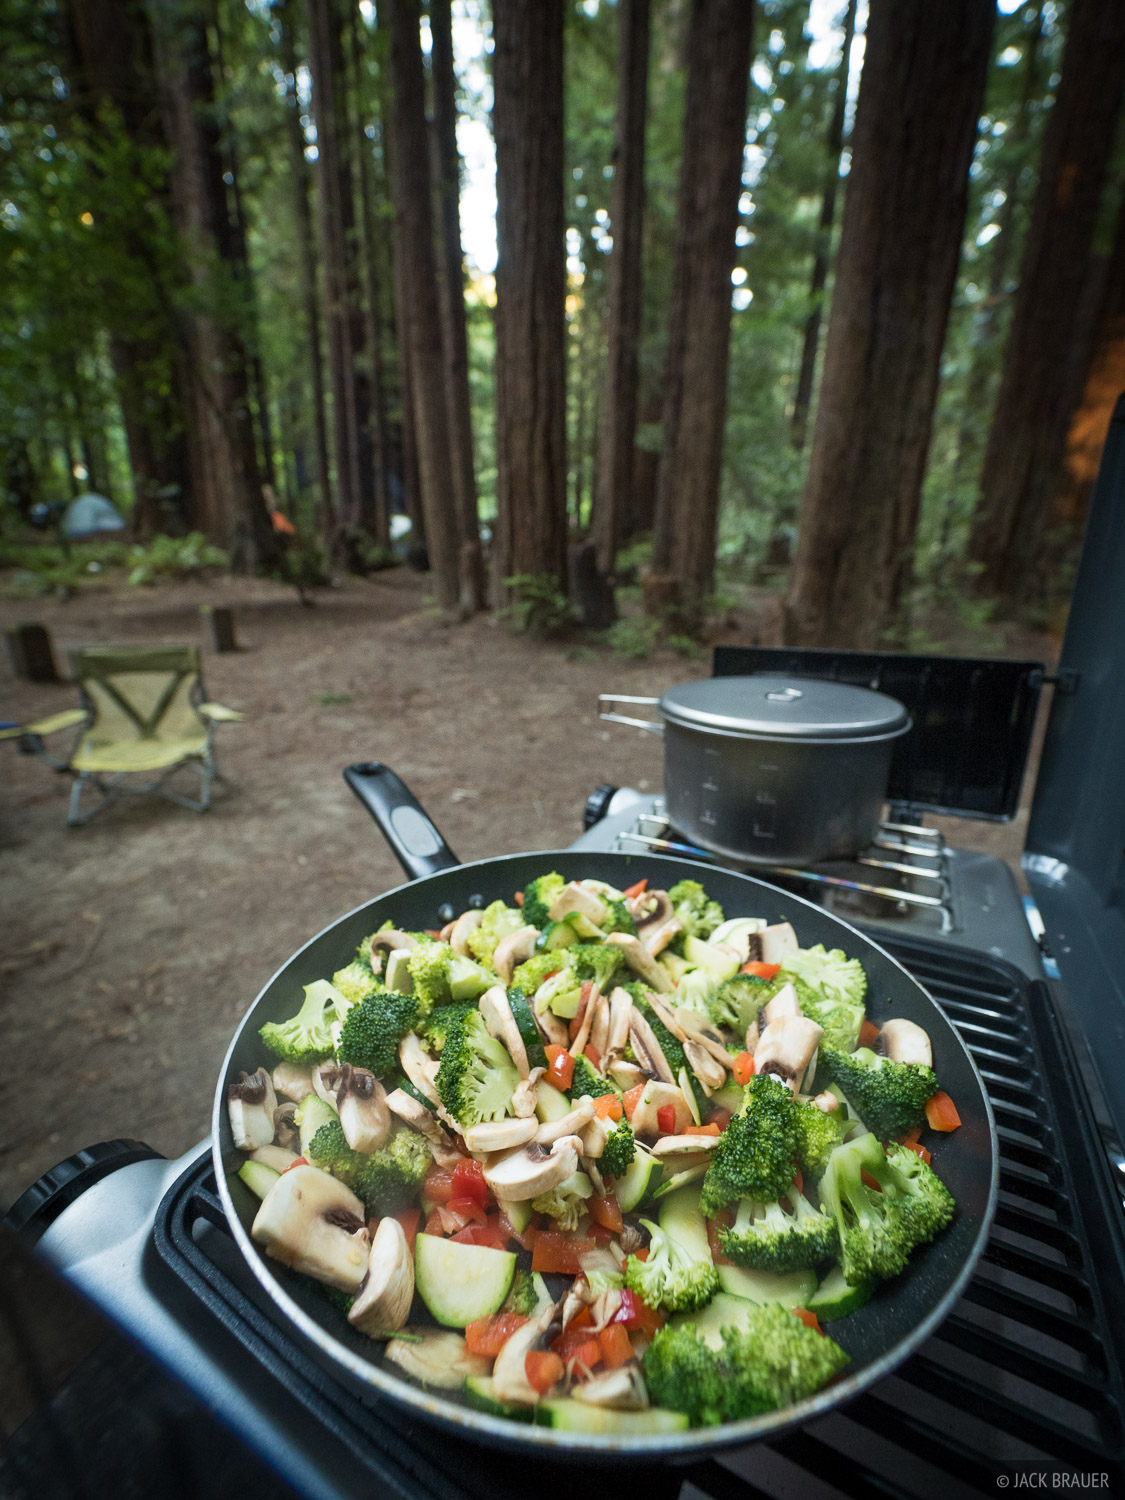 Sautéed veggies at Humboldt State Park campground, while visiting the amazing Redwoods in northern California.